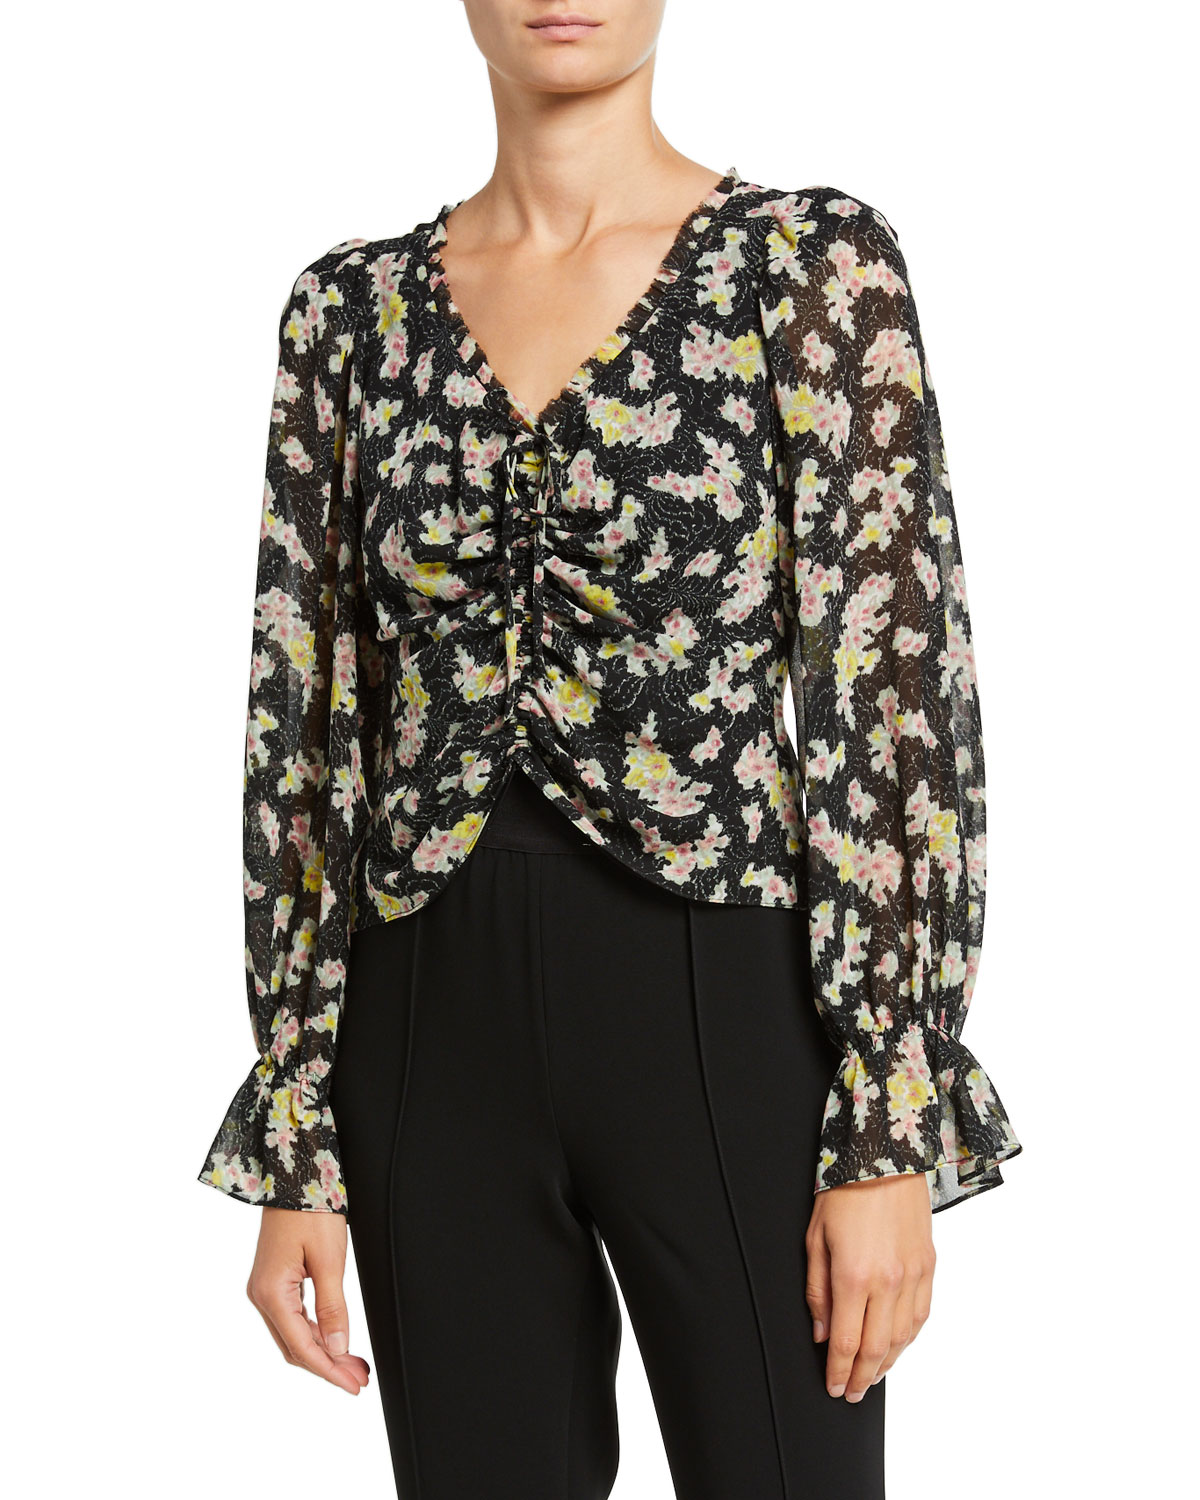 Cinq À Sept Tops KIMBERLY RUCHED LONG-SLEEVE TOP